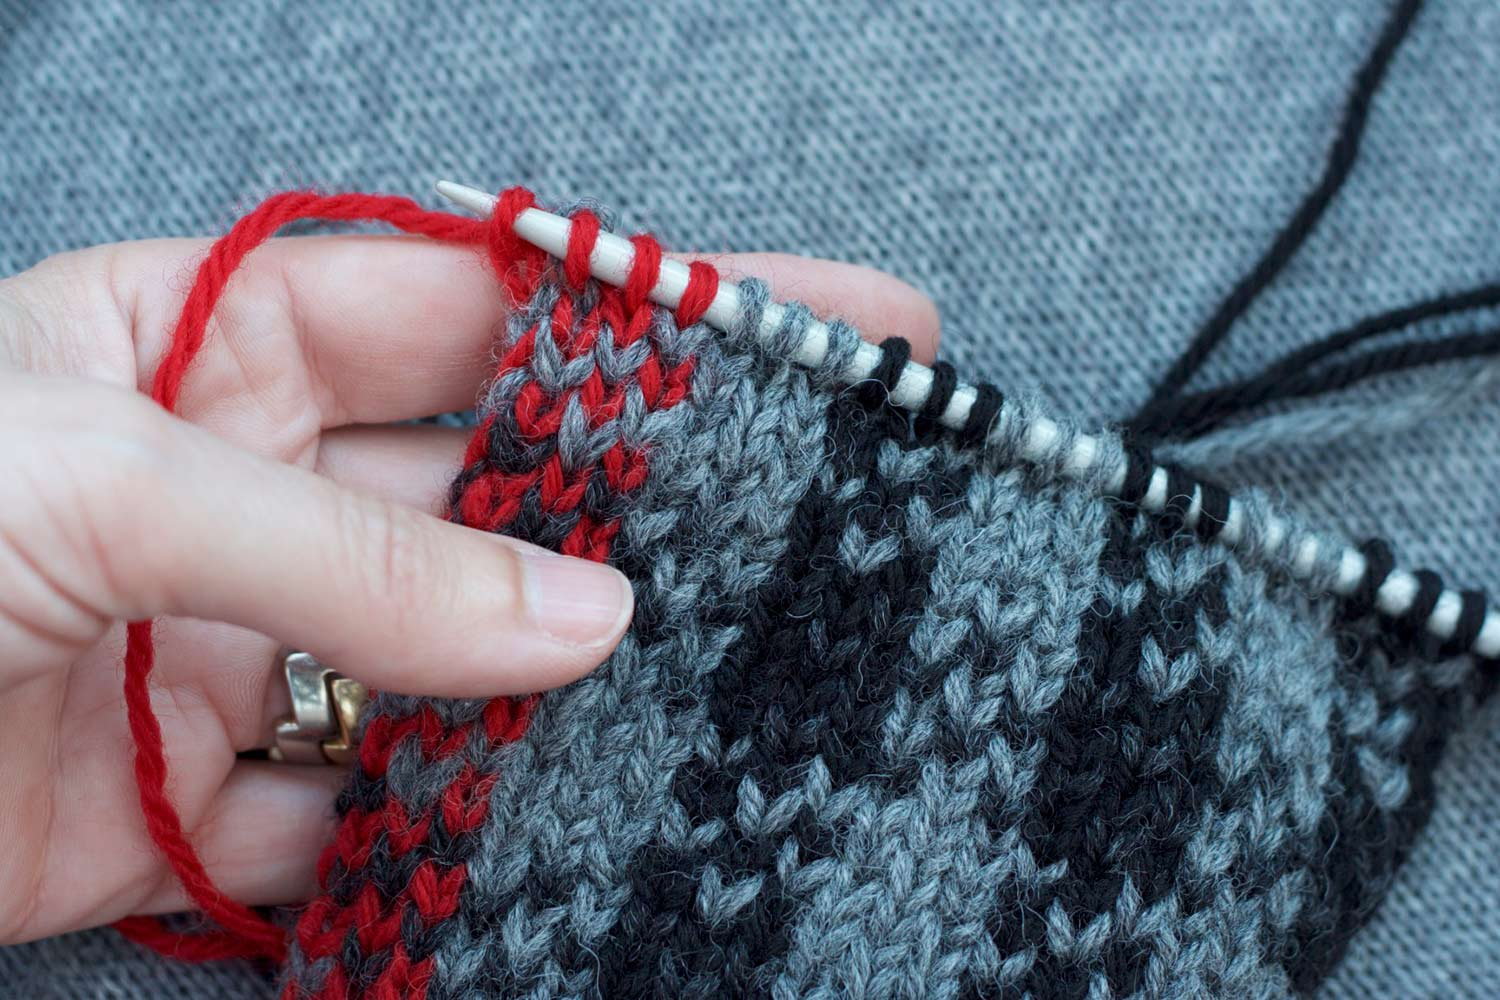 Hand holding knitting on the needles with right side facing showing a completed row of intarsia stitches; stitch pattern is black and grey plaid with one column of red stitches on left selvedge.